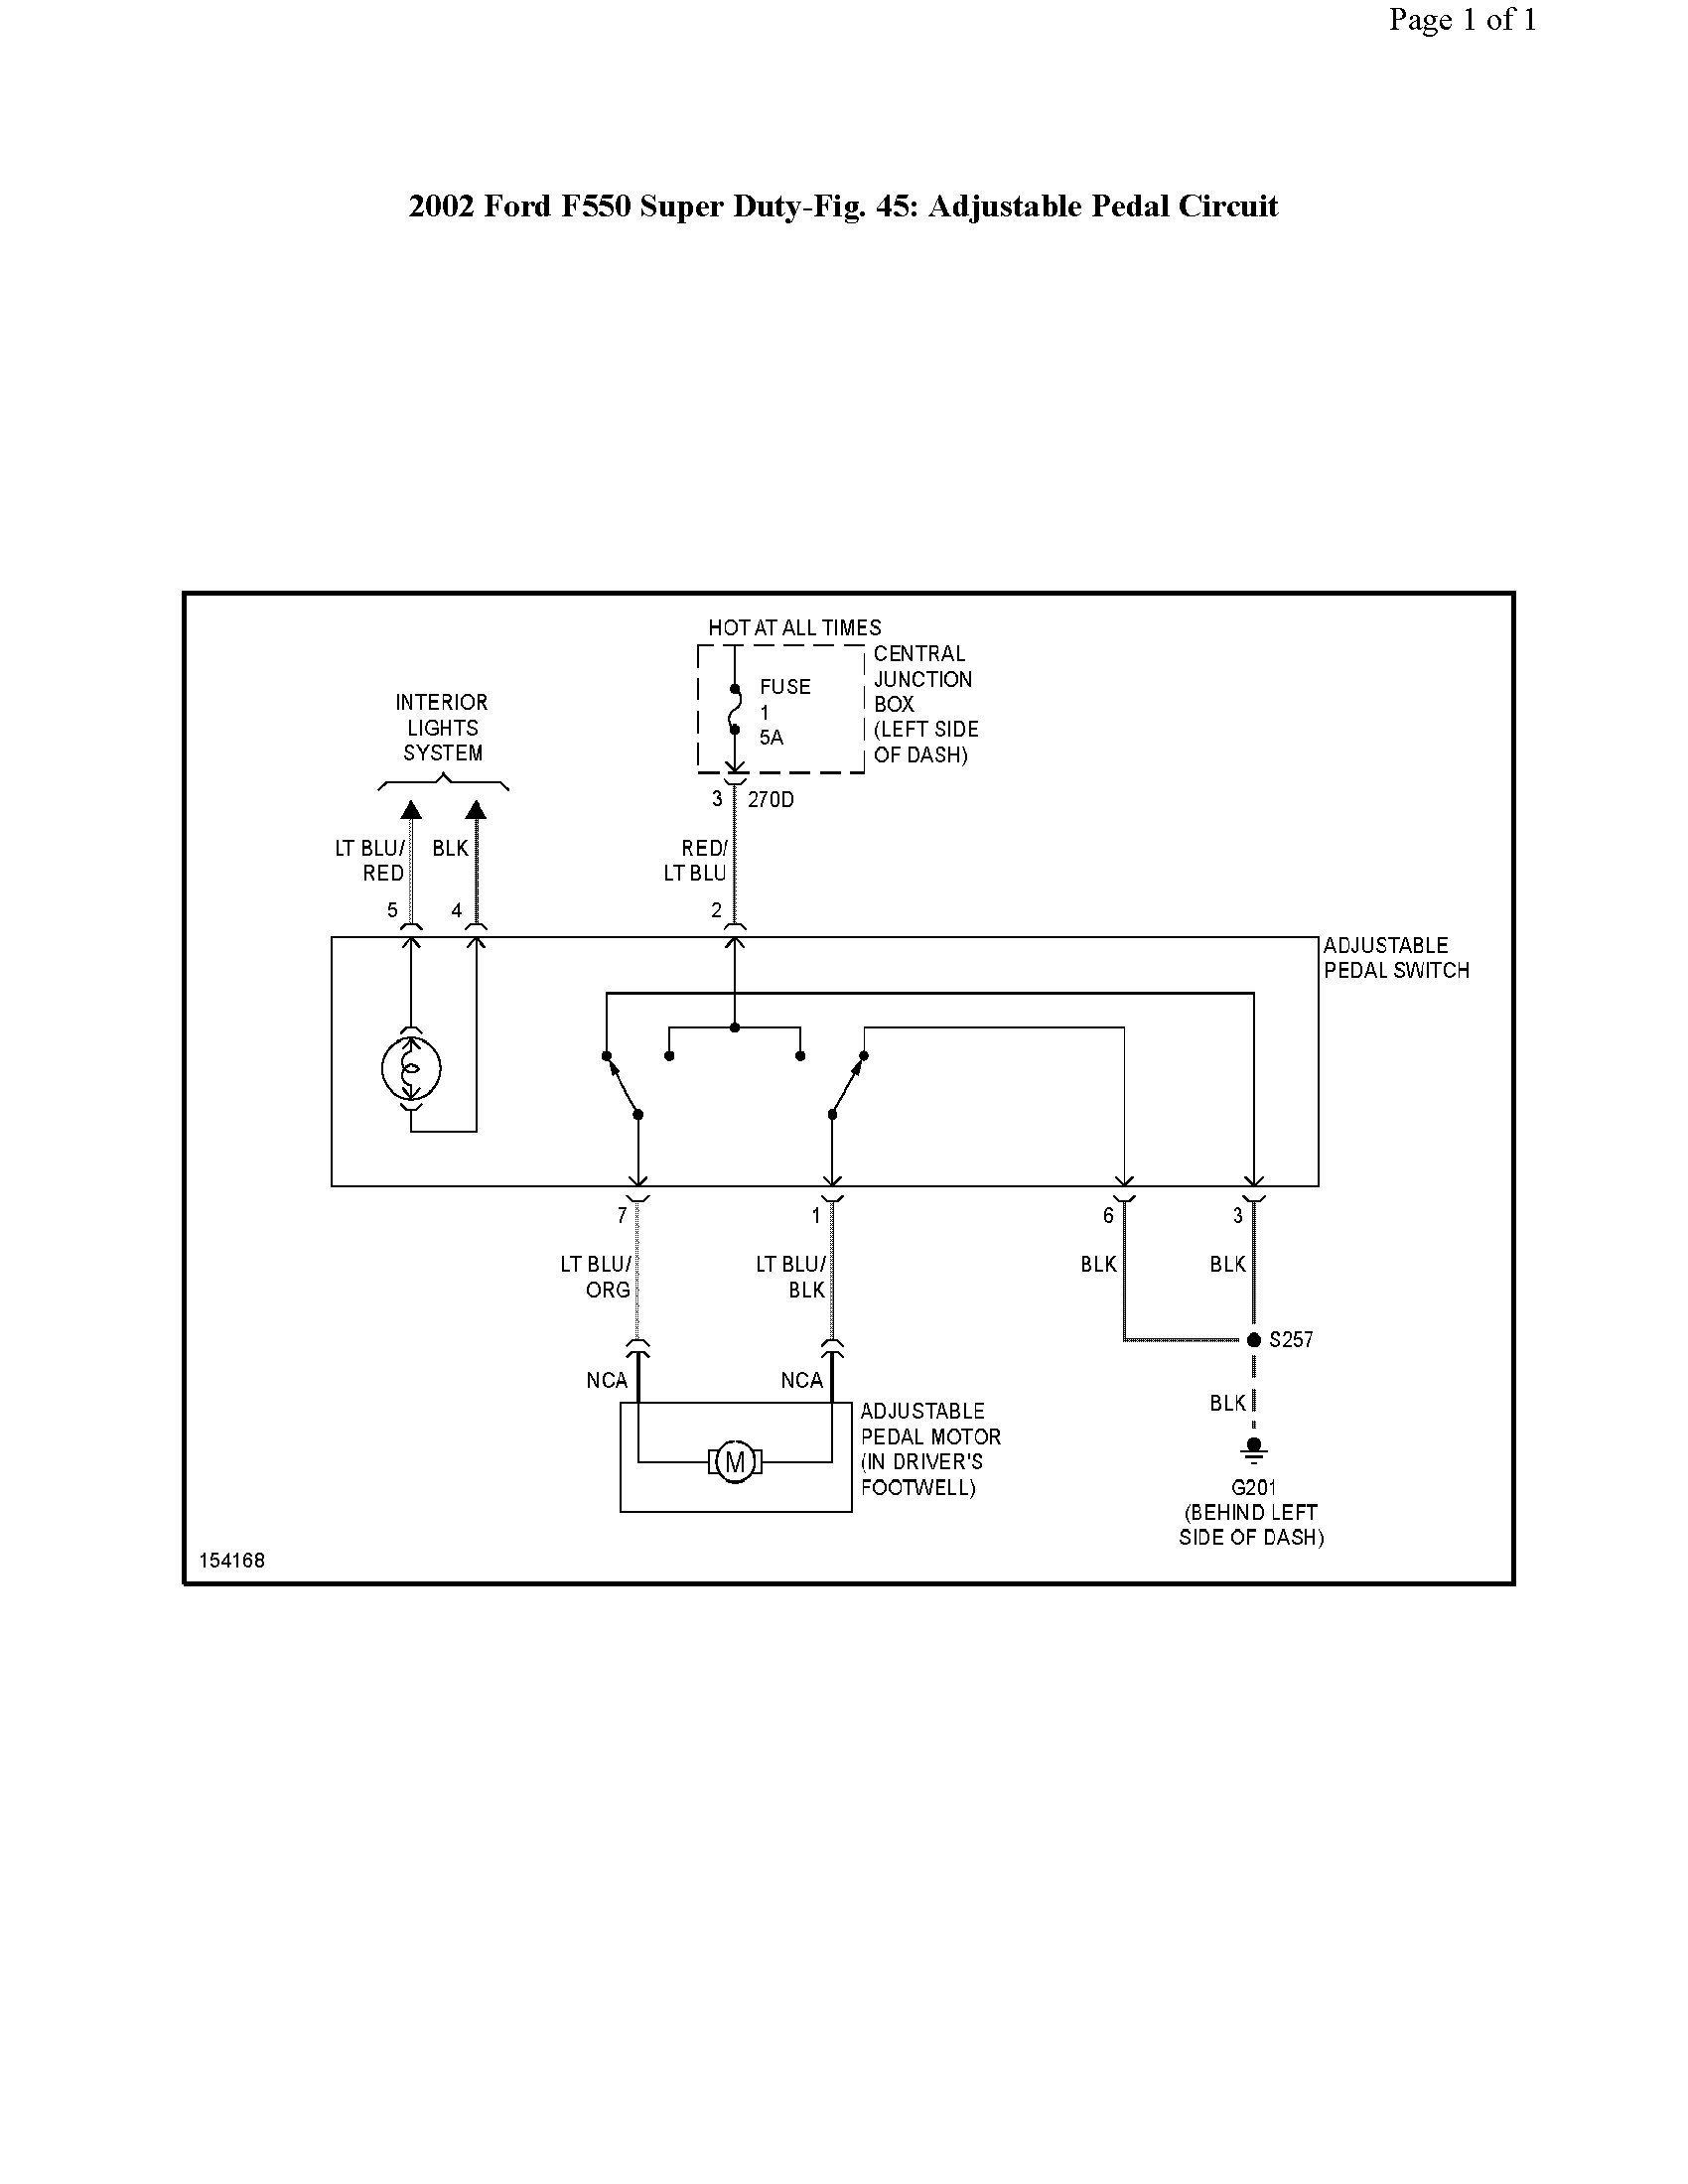 psd 05 f250 fuse box psd printable wiring diagram database psd 05 f250 fuse box wire get image about wiring diagrams source